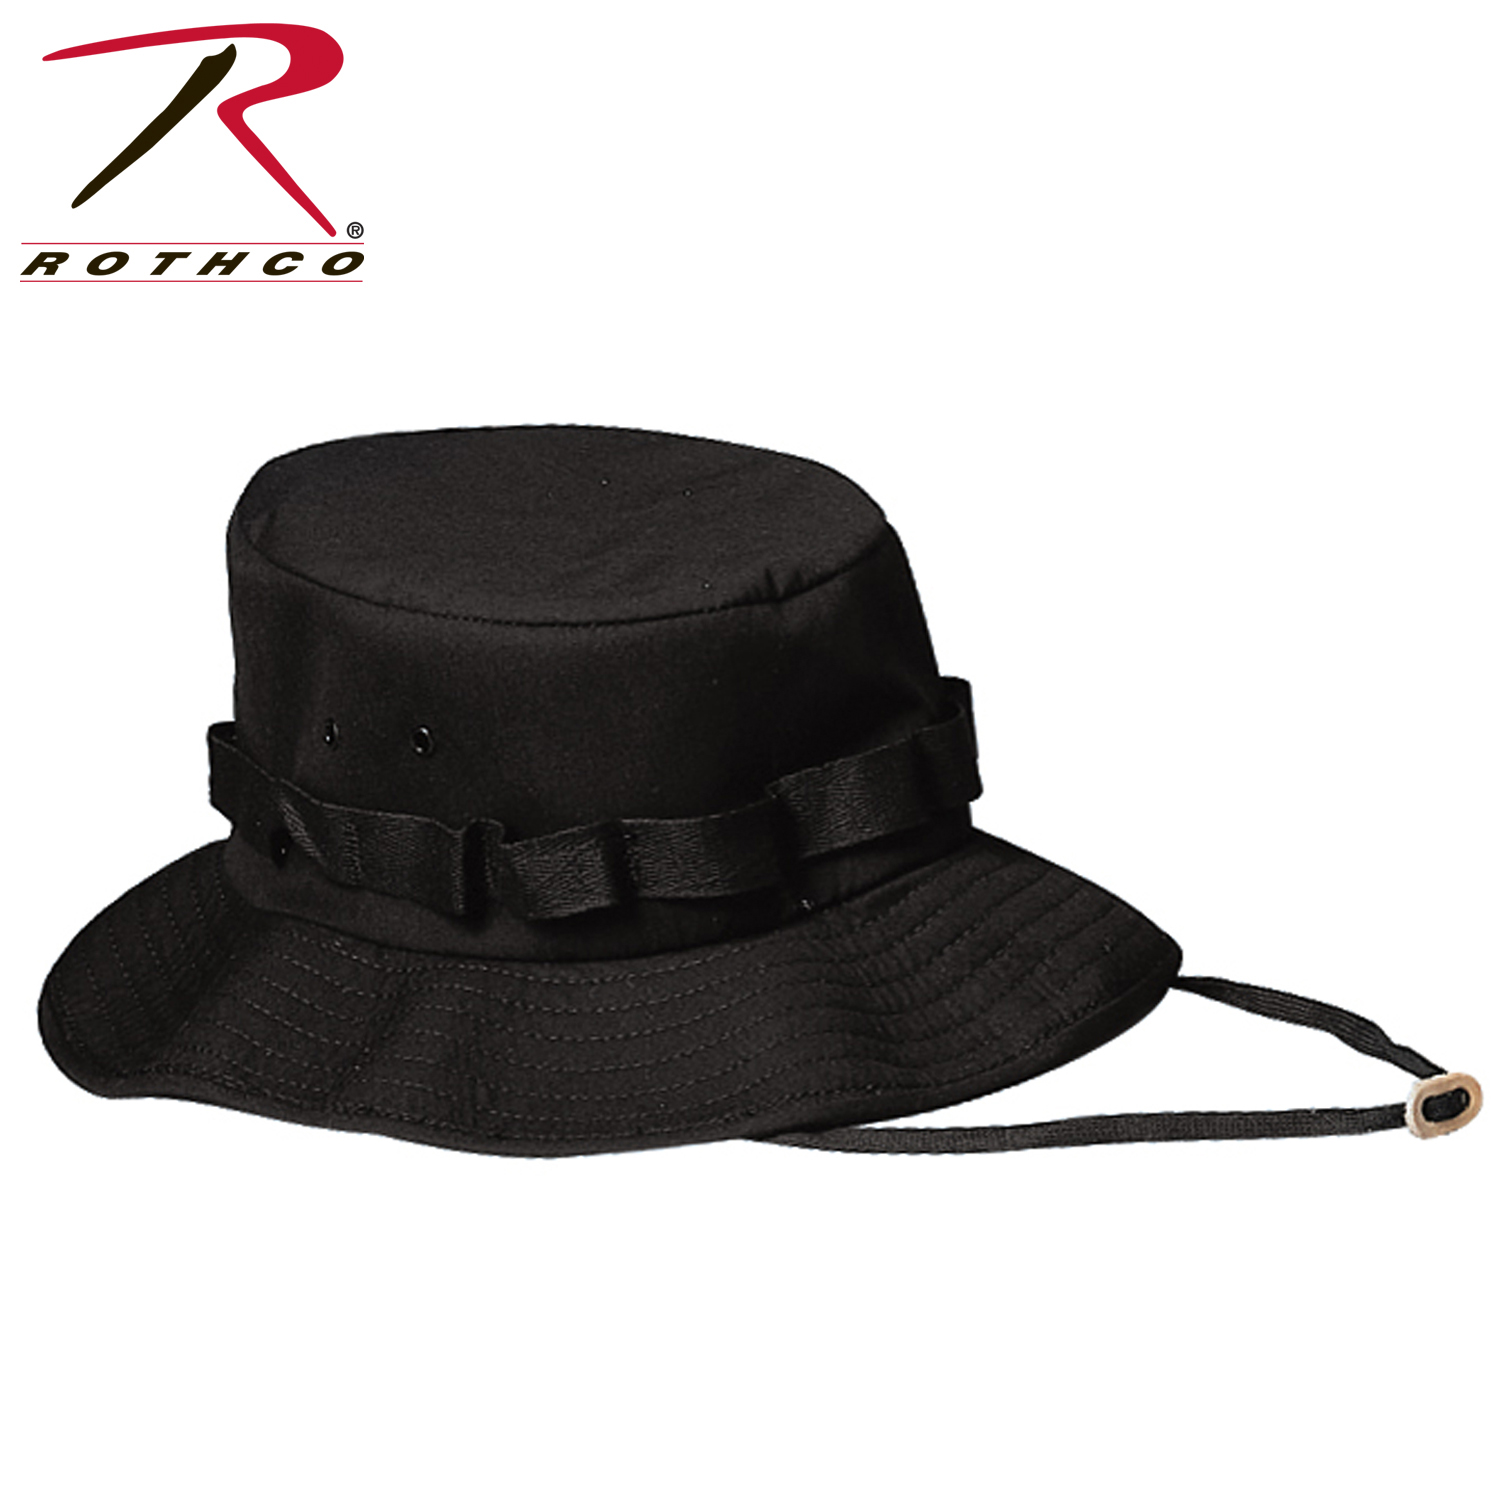 d8bbbf32598 Rothco Jungle Hat